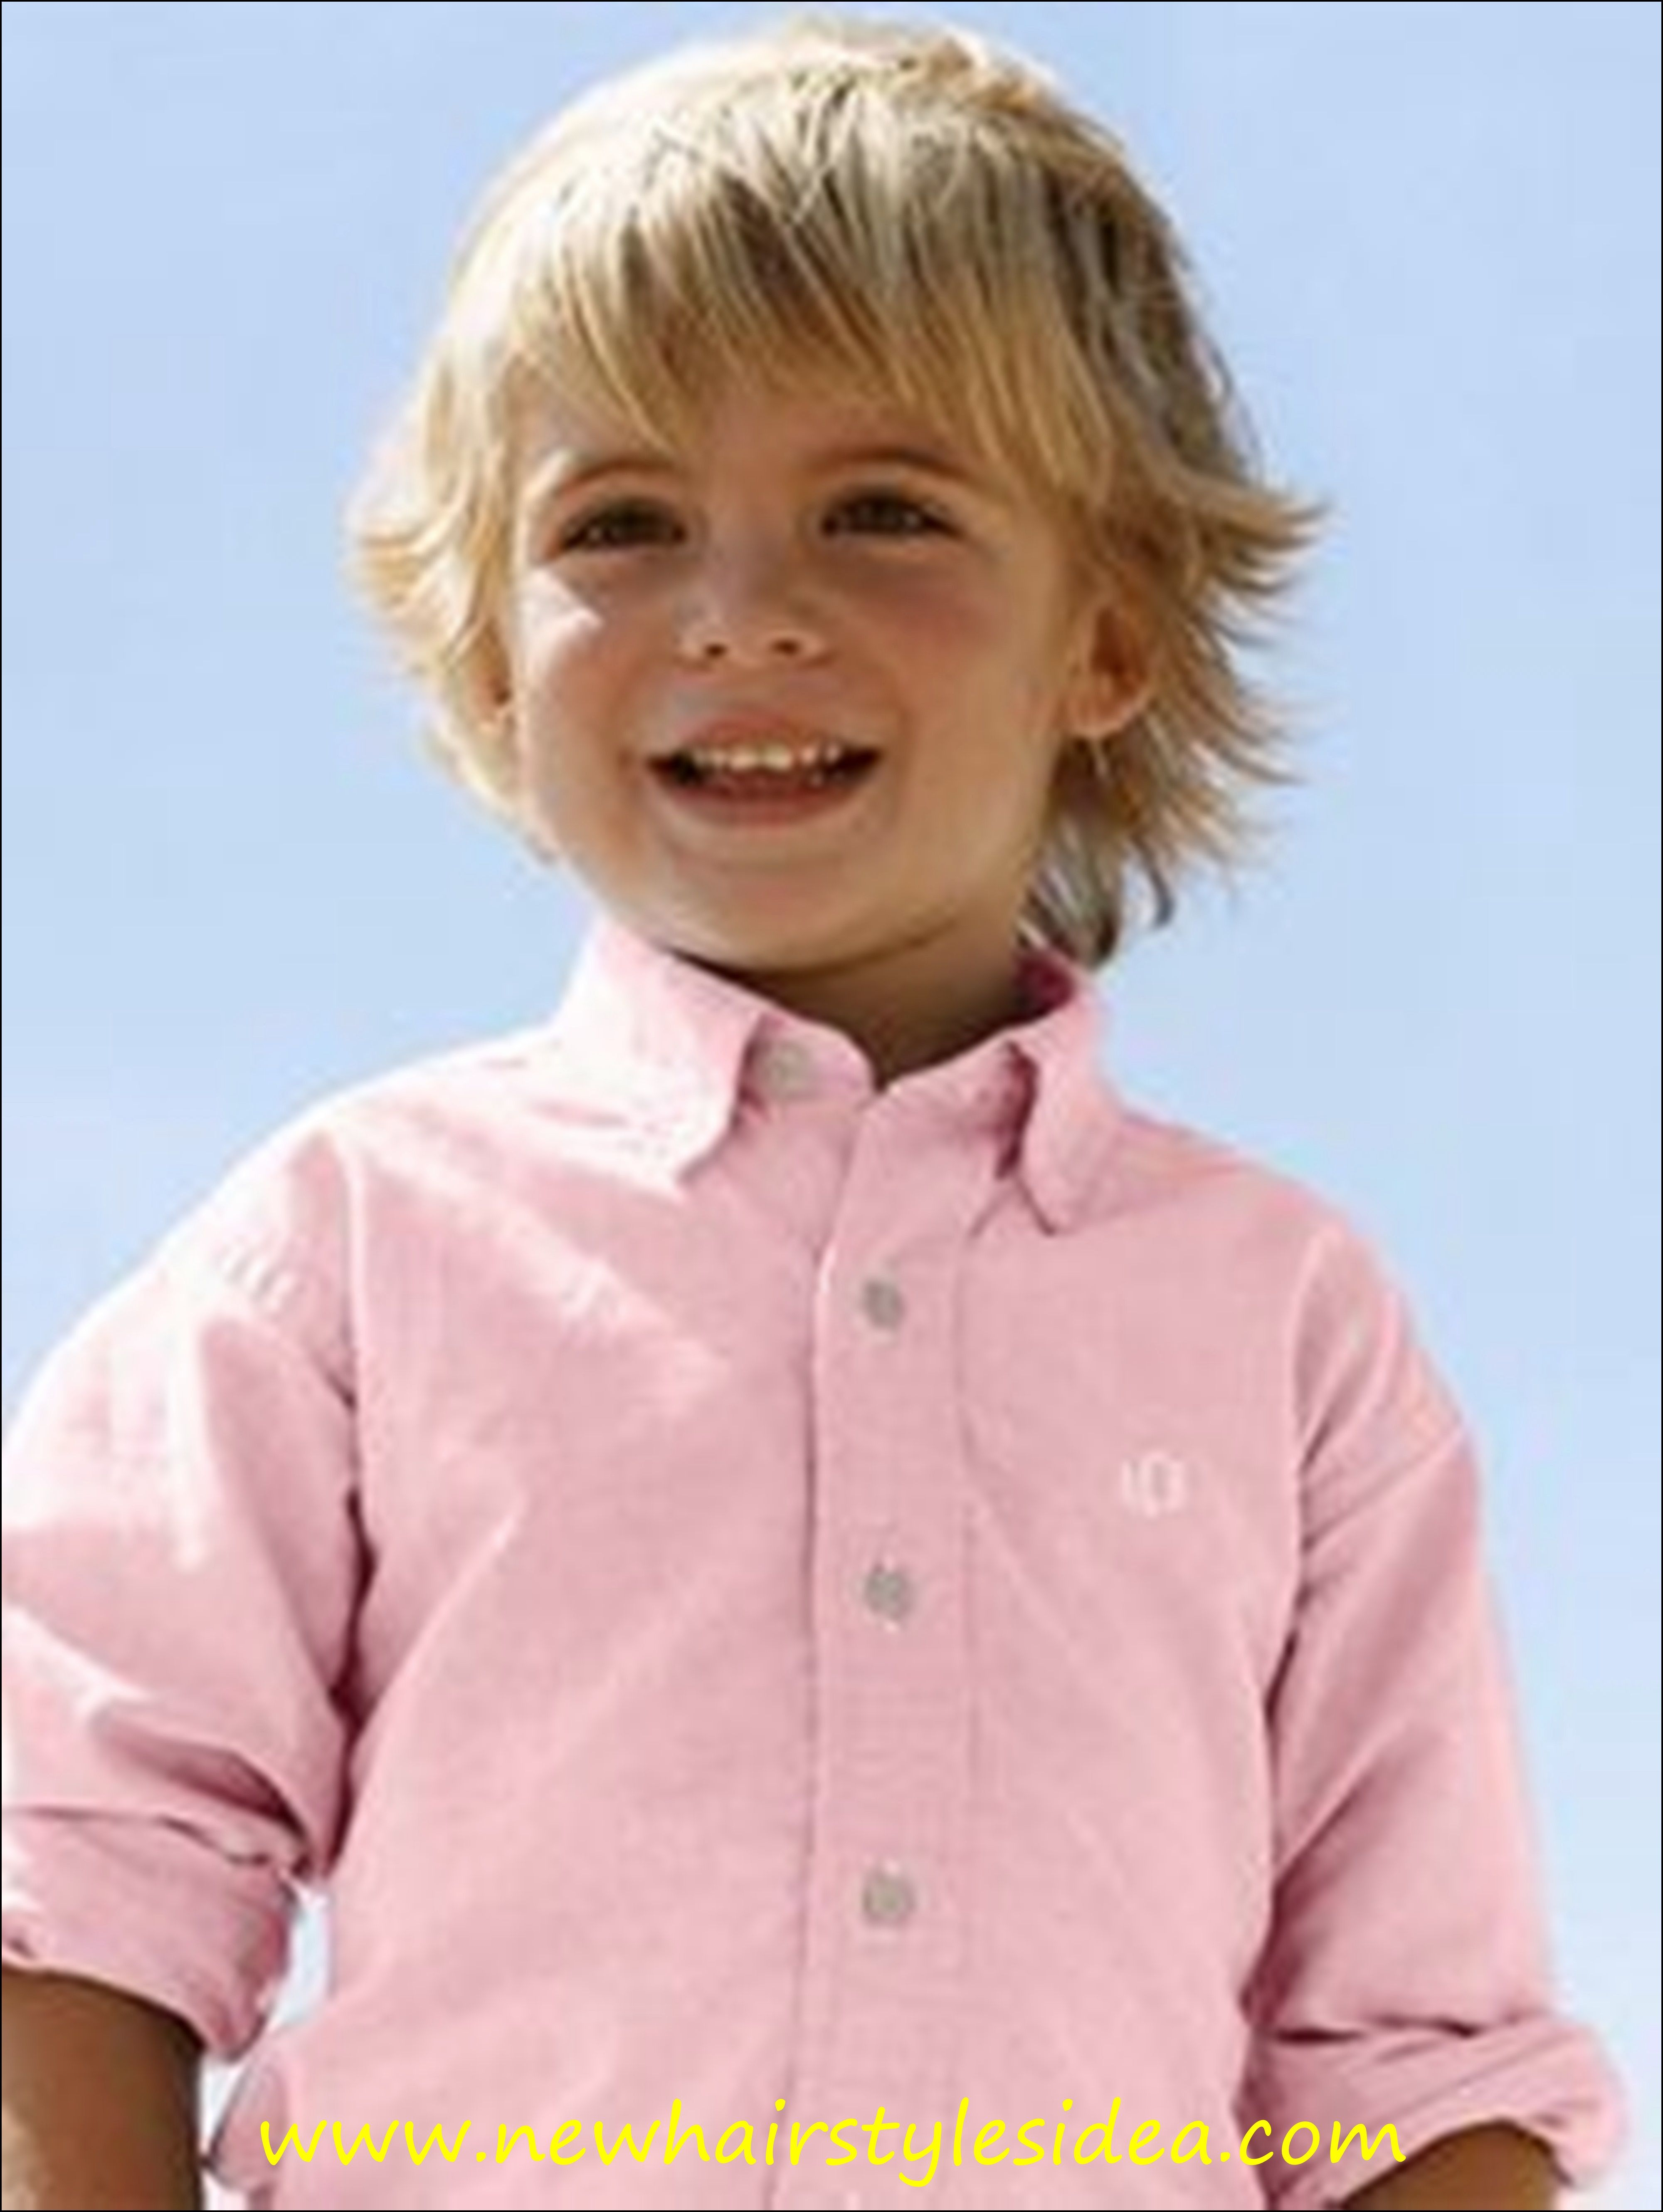 Swell 1000 Ideas About Young Boy Haircuts On Pinterest Boy Haircuts Hairstyles For Men Maxibearus